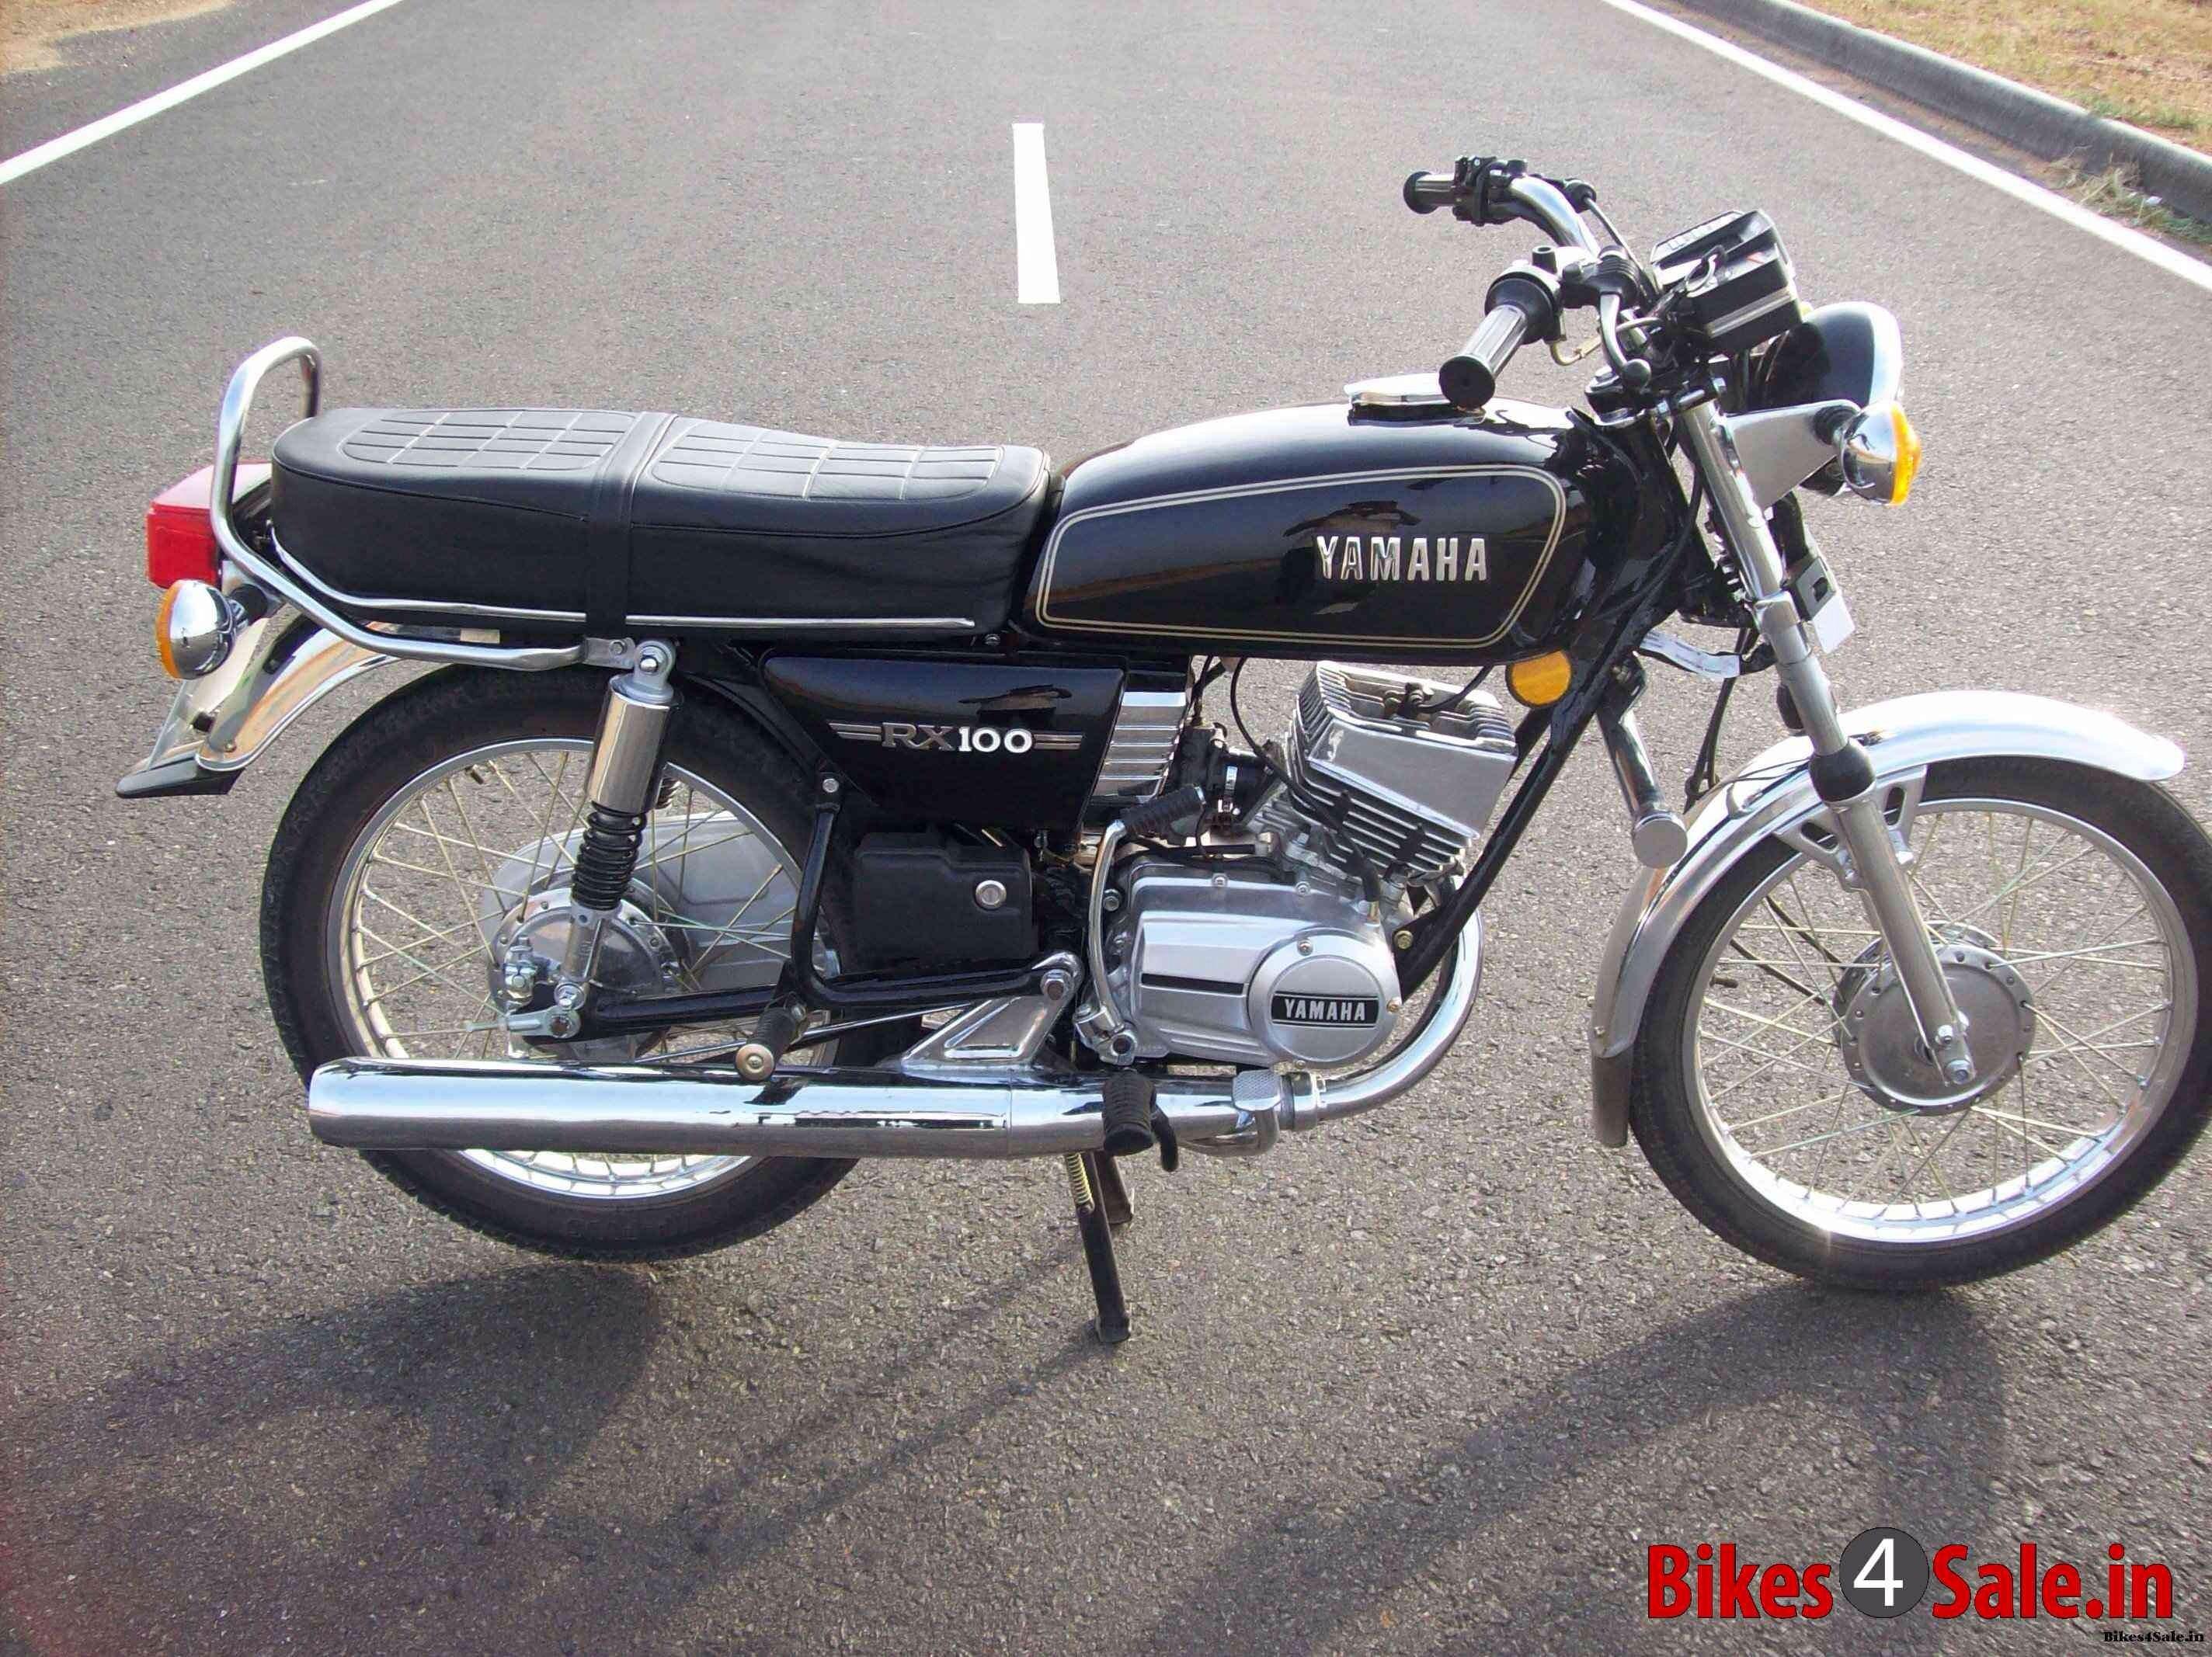 Perfect Example Yamaha Rx100 Yamaha Hd Images